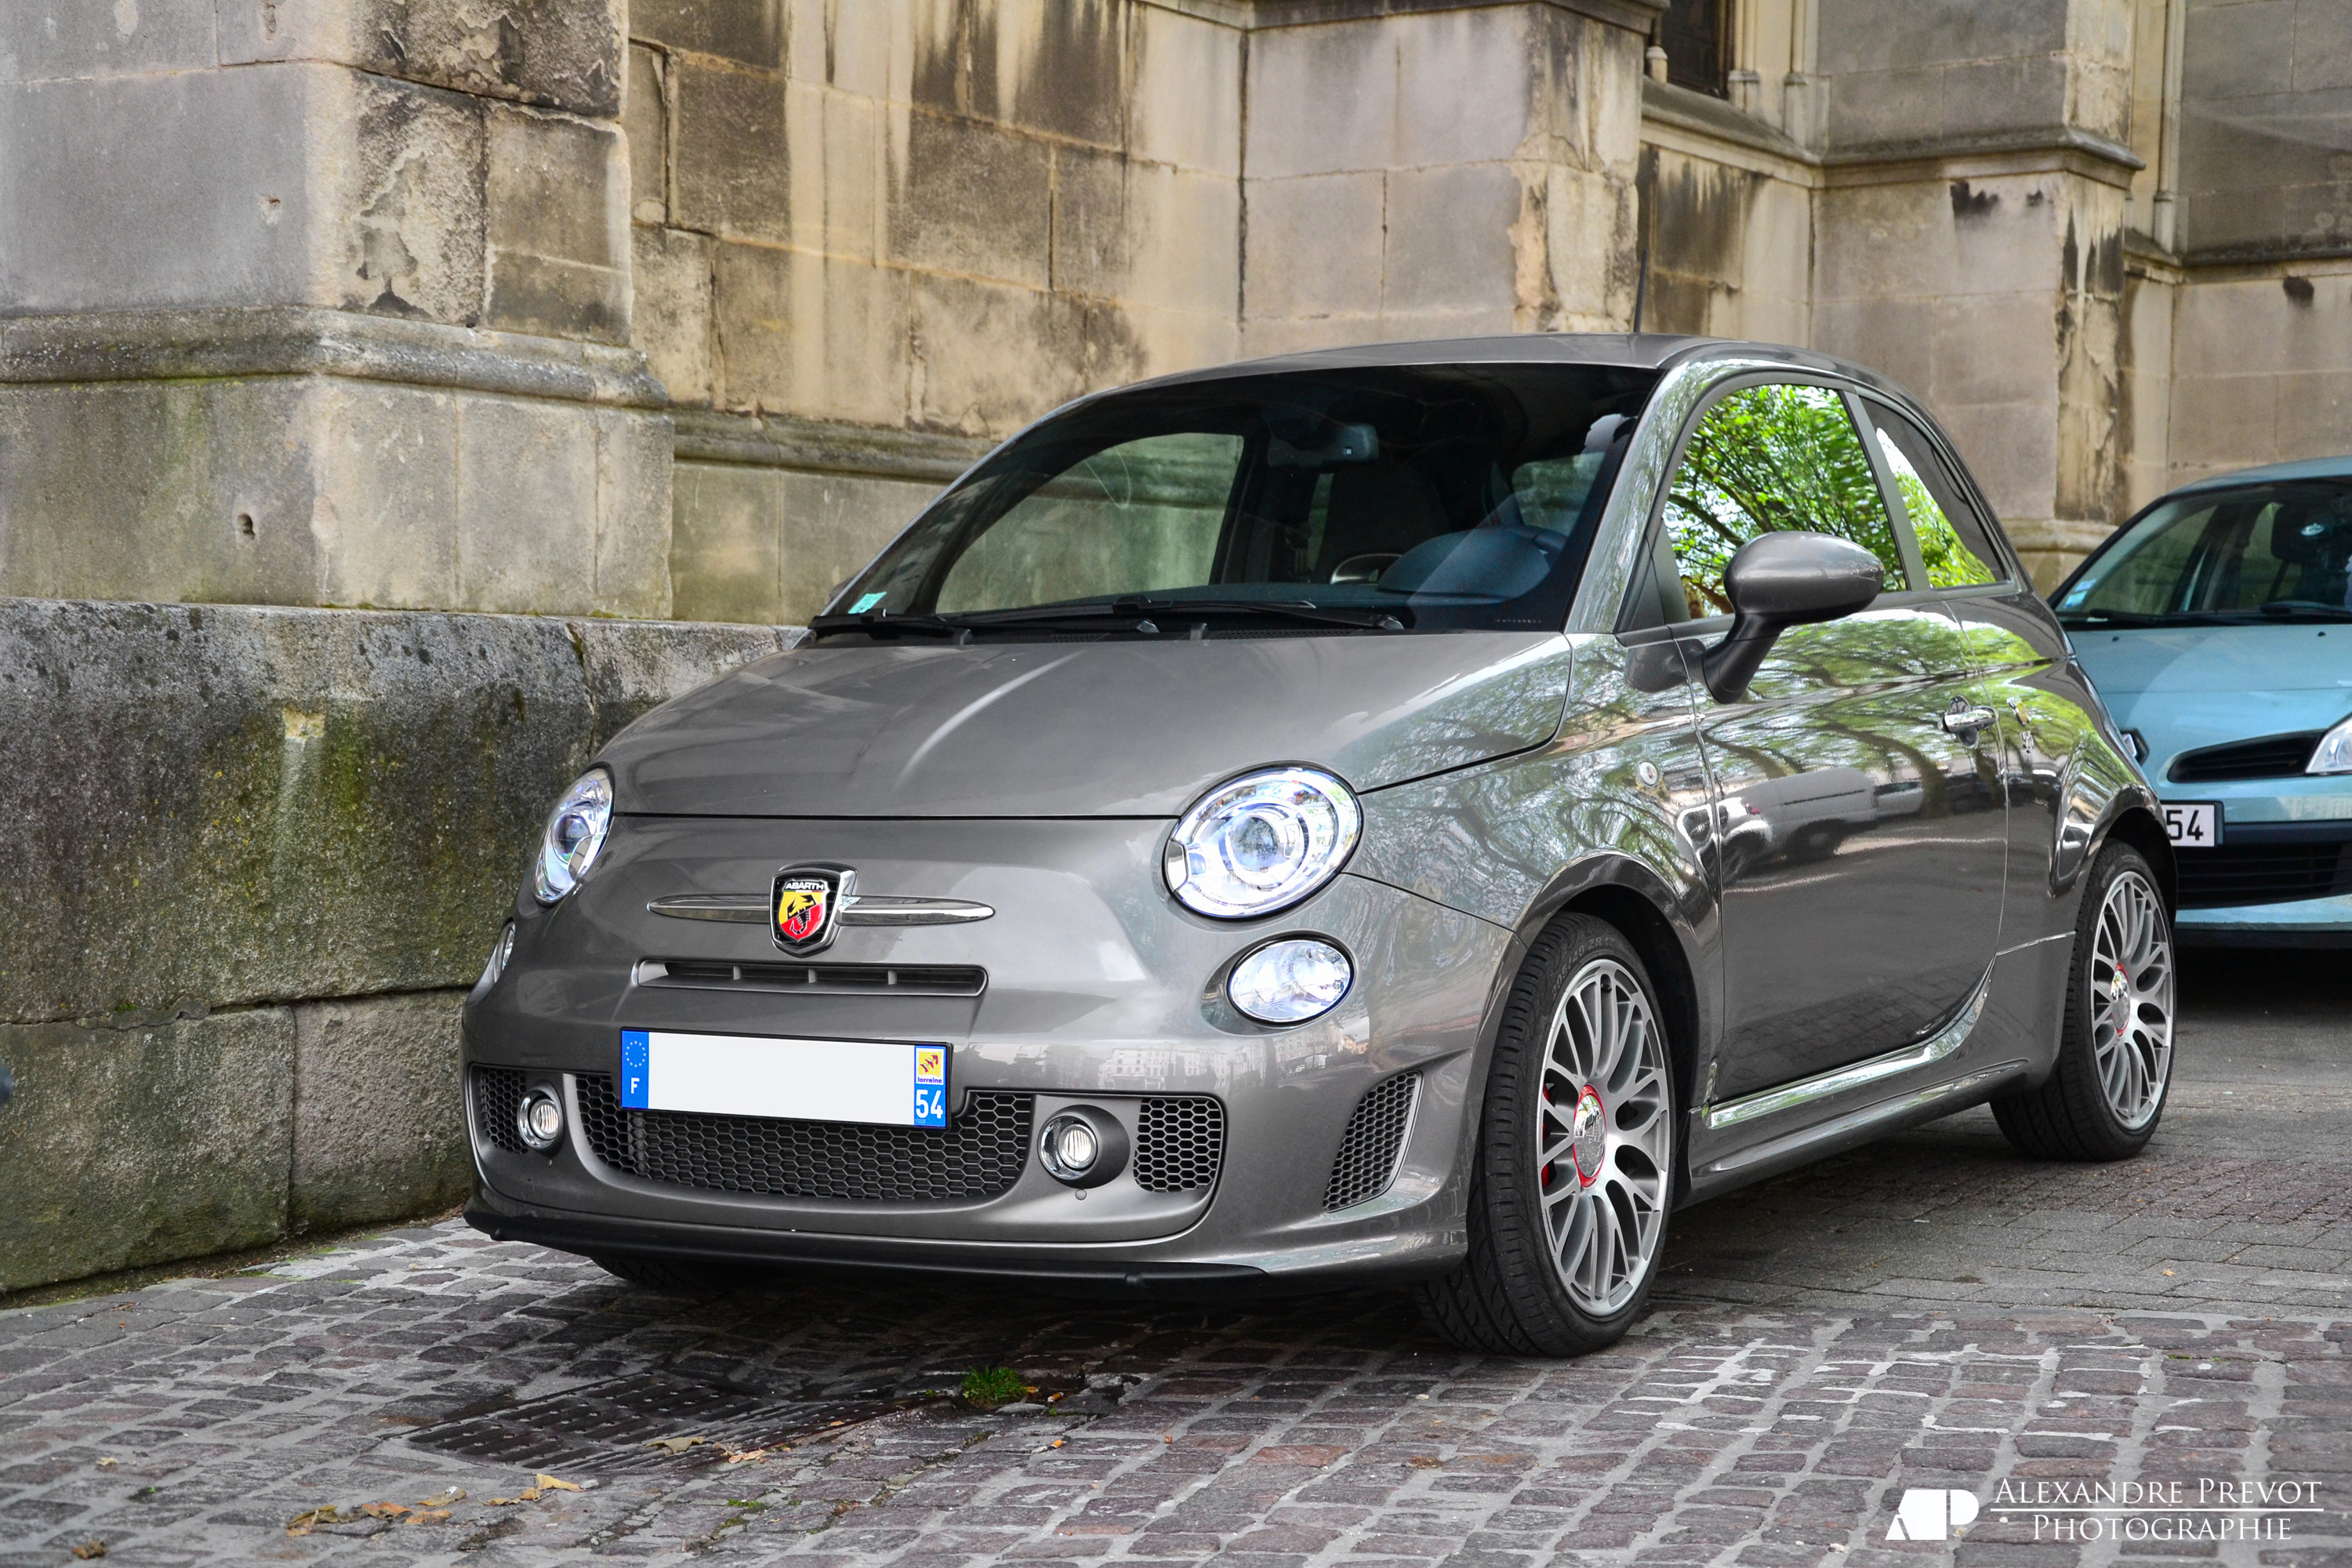 file fiat 500 abarth 595 turismo flickr alexandre. Black Bedroom Furniture Sets. Home Design Ideas